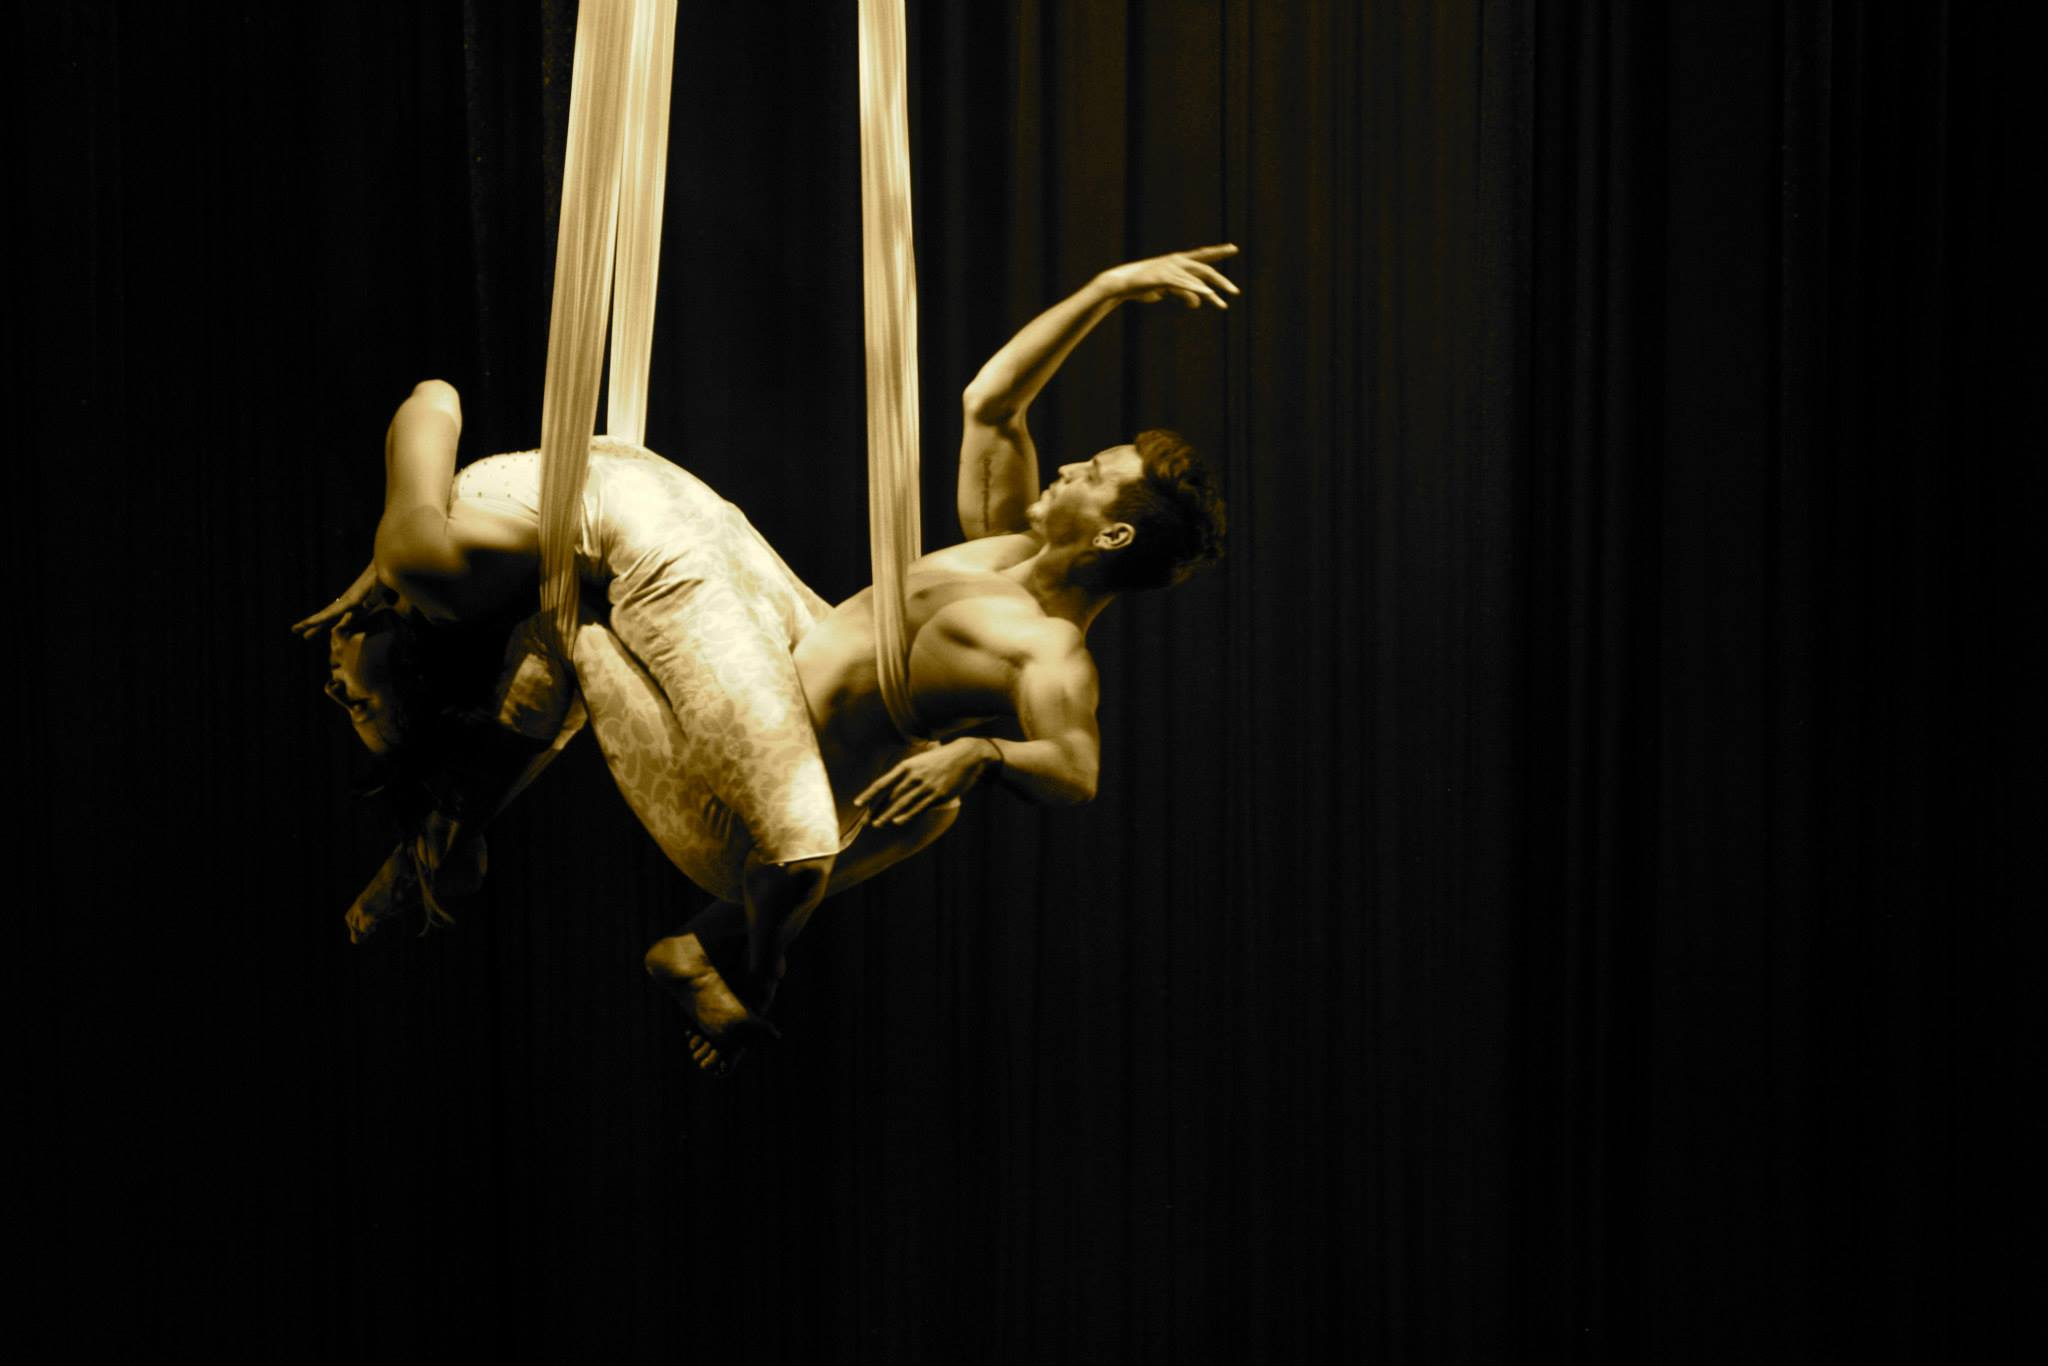 Duo Hammocks Performers Tina Phoenix and Fernando Miro